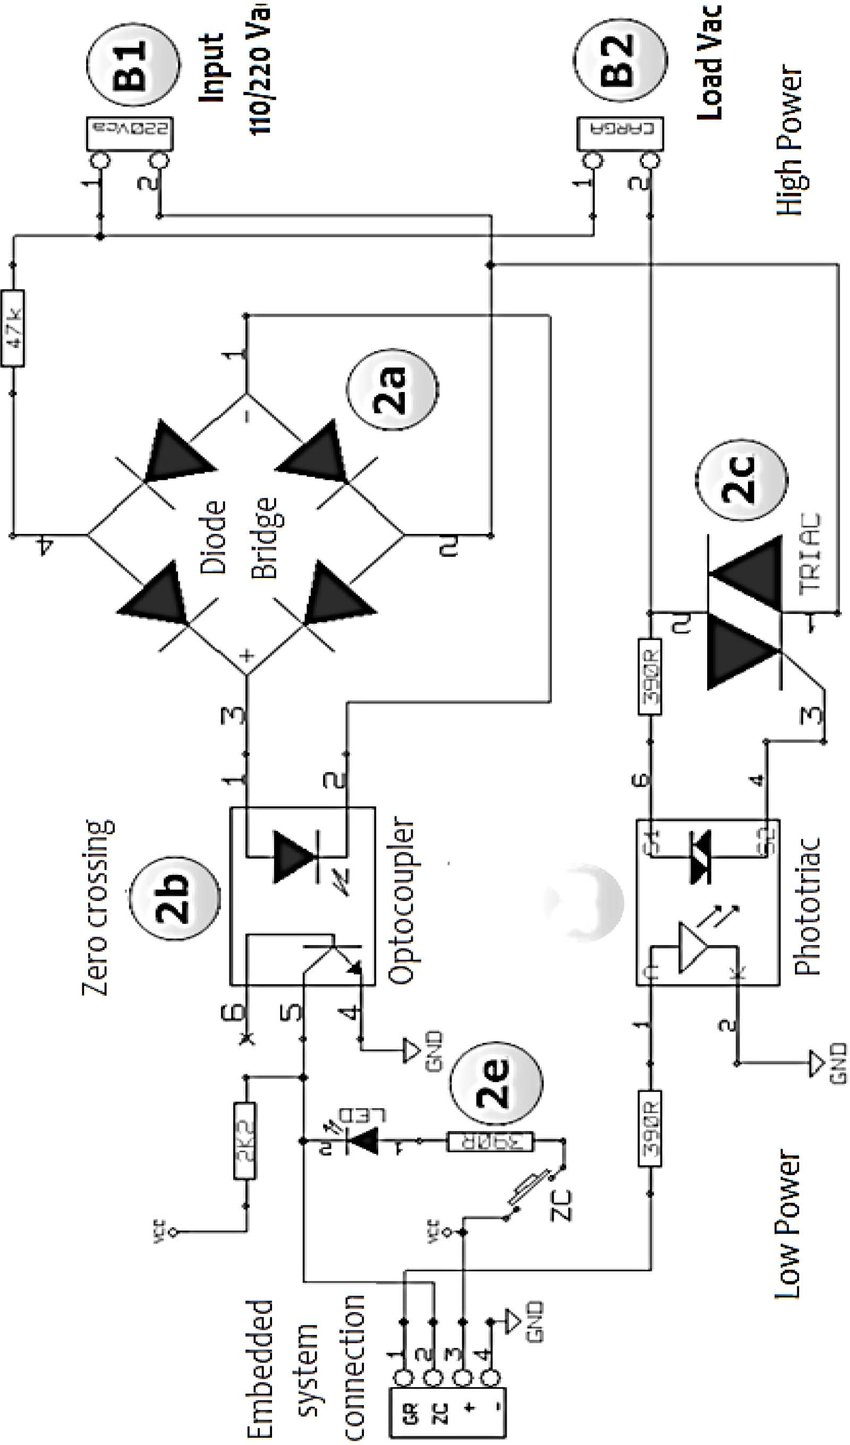 hight resolution of schematic of the developed ac voltage control circuit the zero crossing detection 9 of the grid sinusoidal voltage is performed using a photo coupler